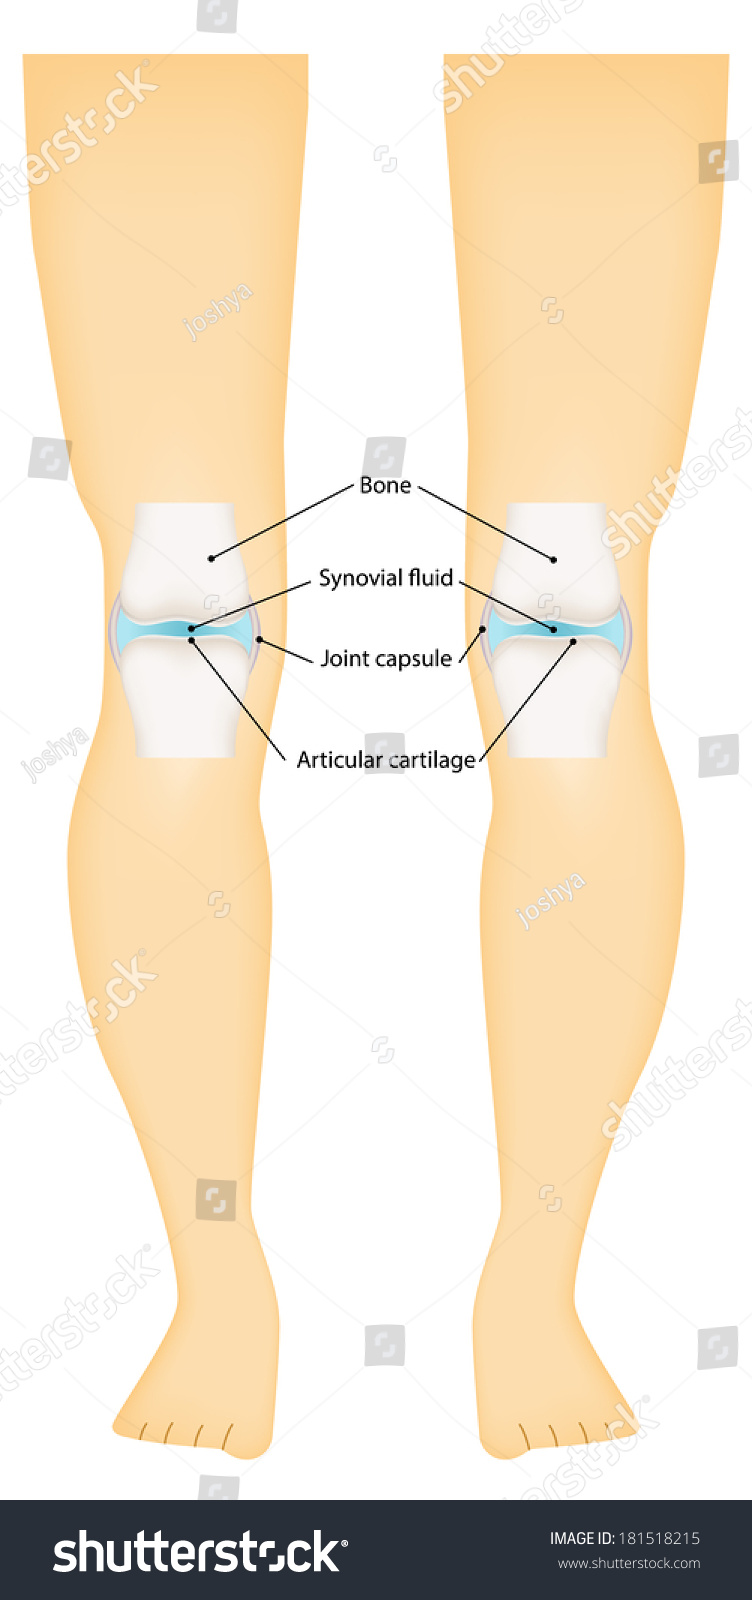 Synovial joint knee labeled diagram stock illustration 181518215 synovial joint knee labeled diagram pooptronica Gallery